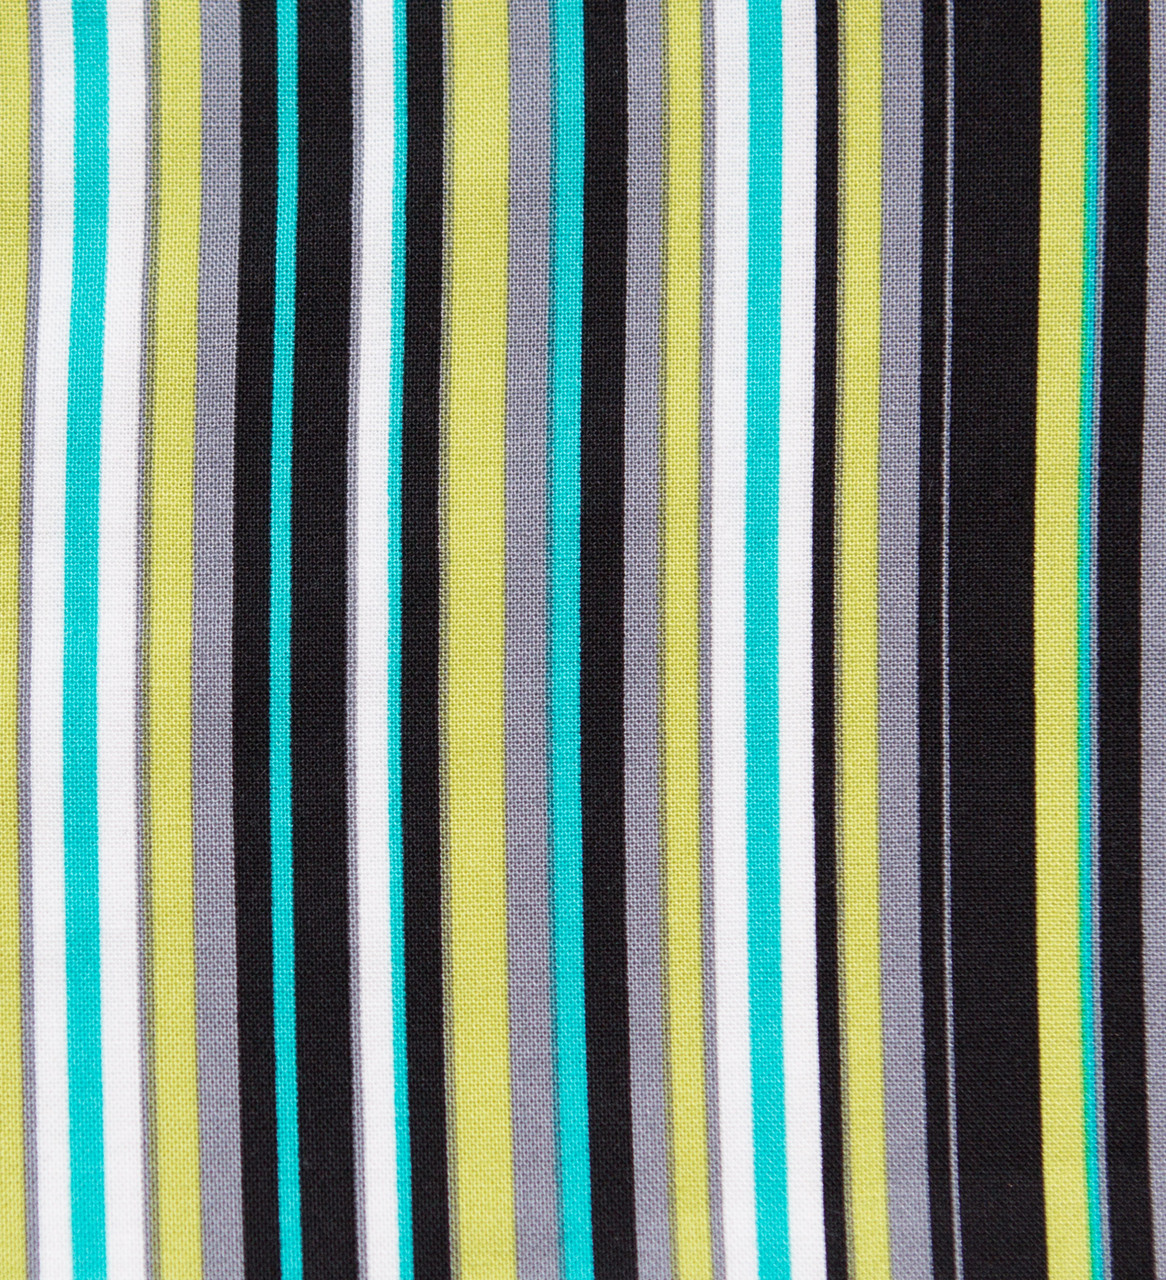 European Stripes print